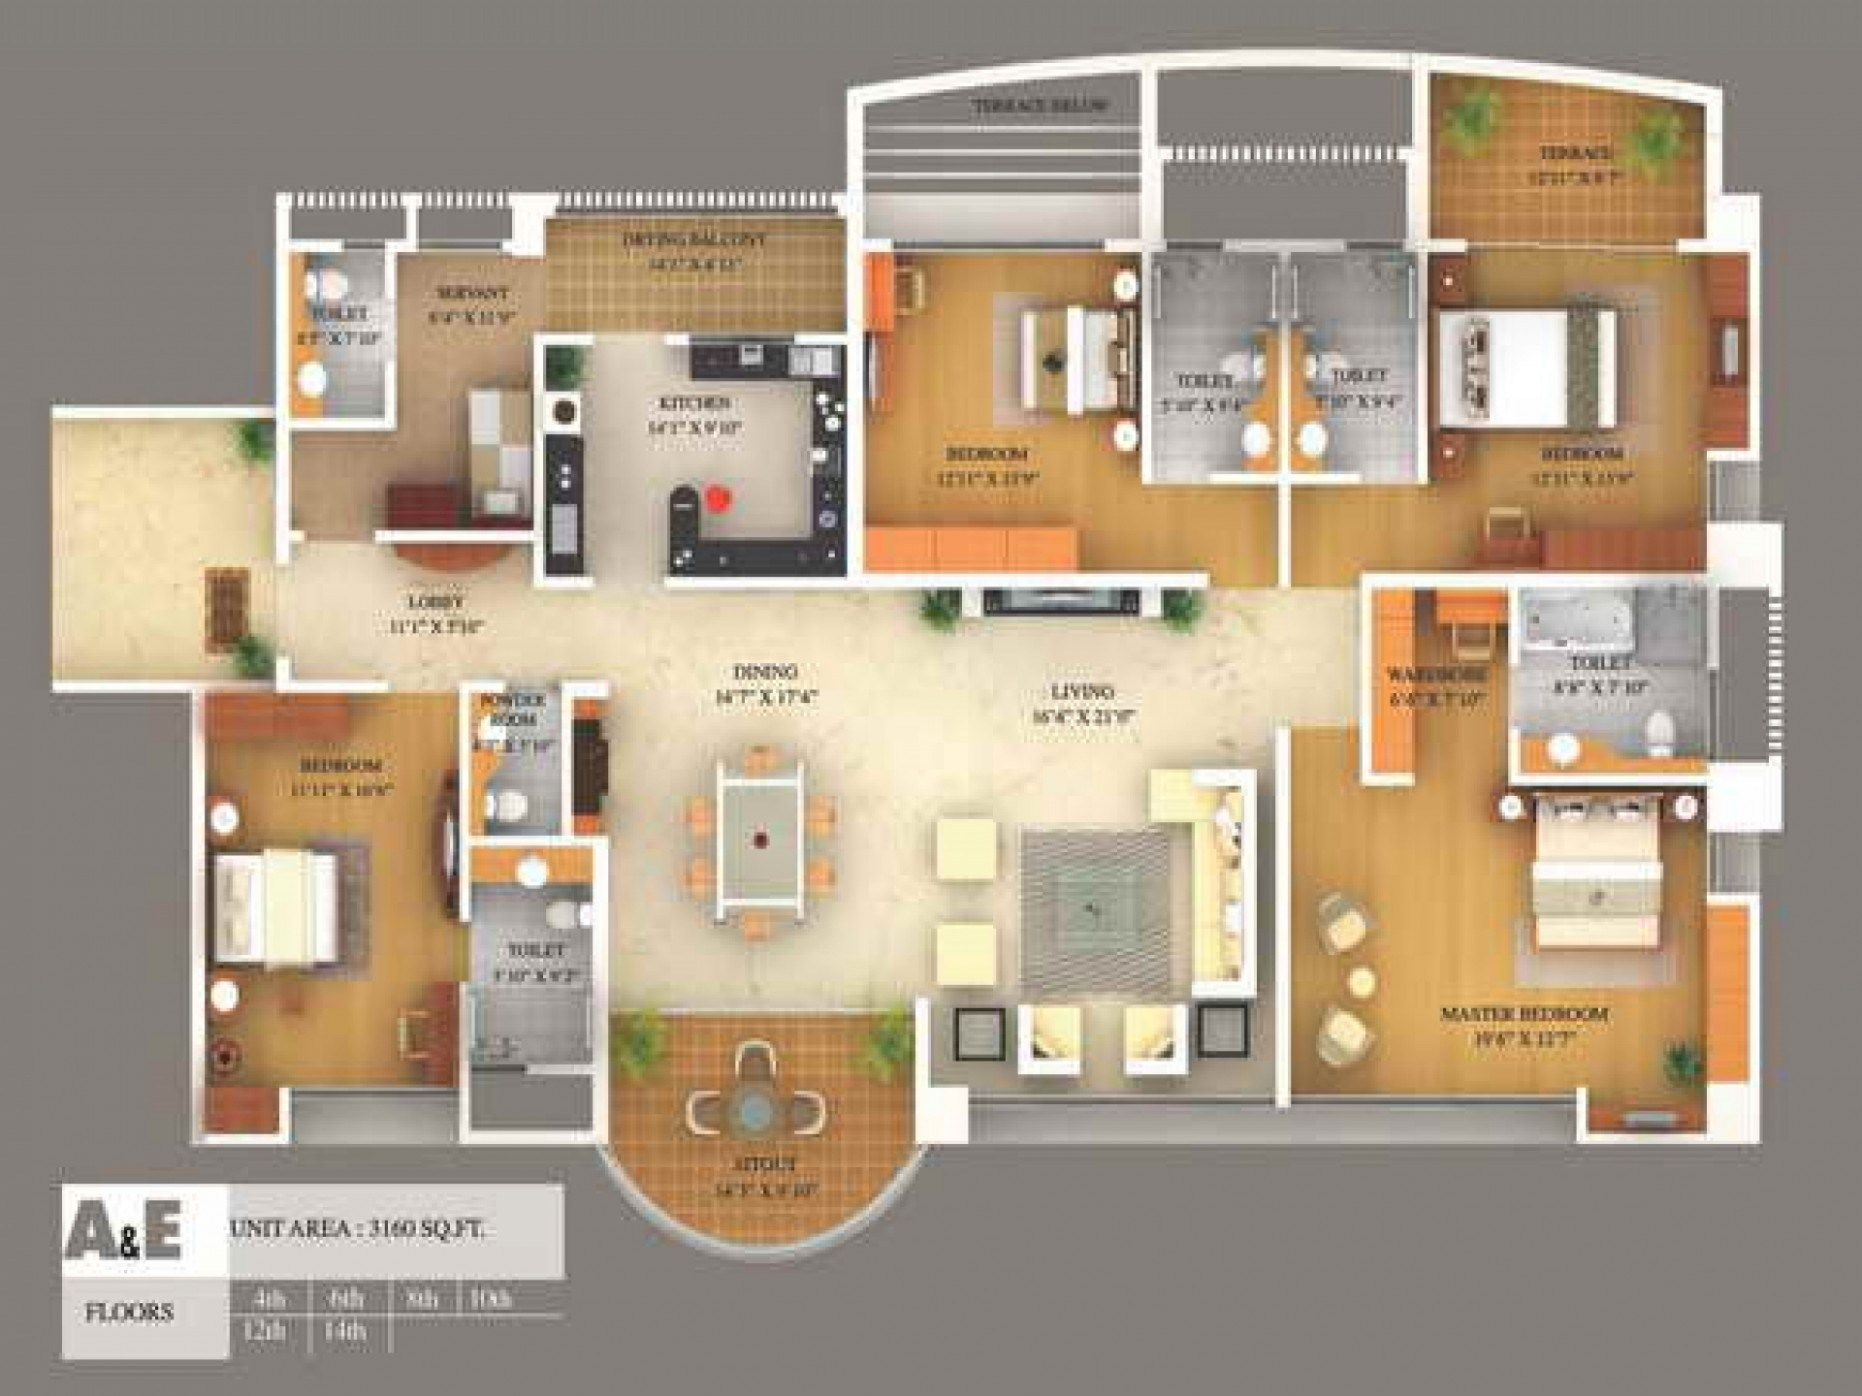 Hgtv home giveawaycaption id alignaligncenter plan design online home design and style interior plan